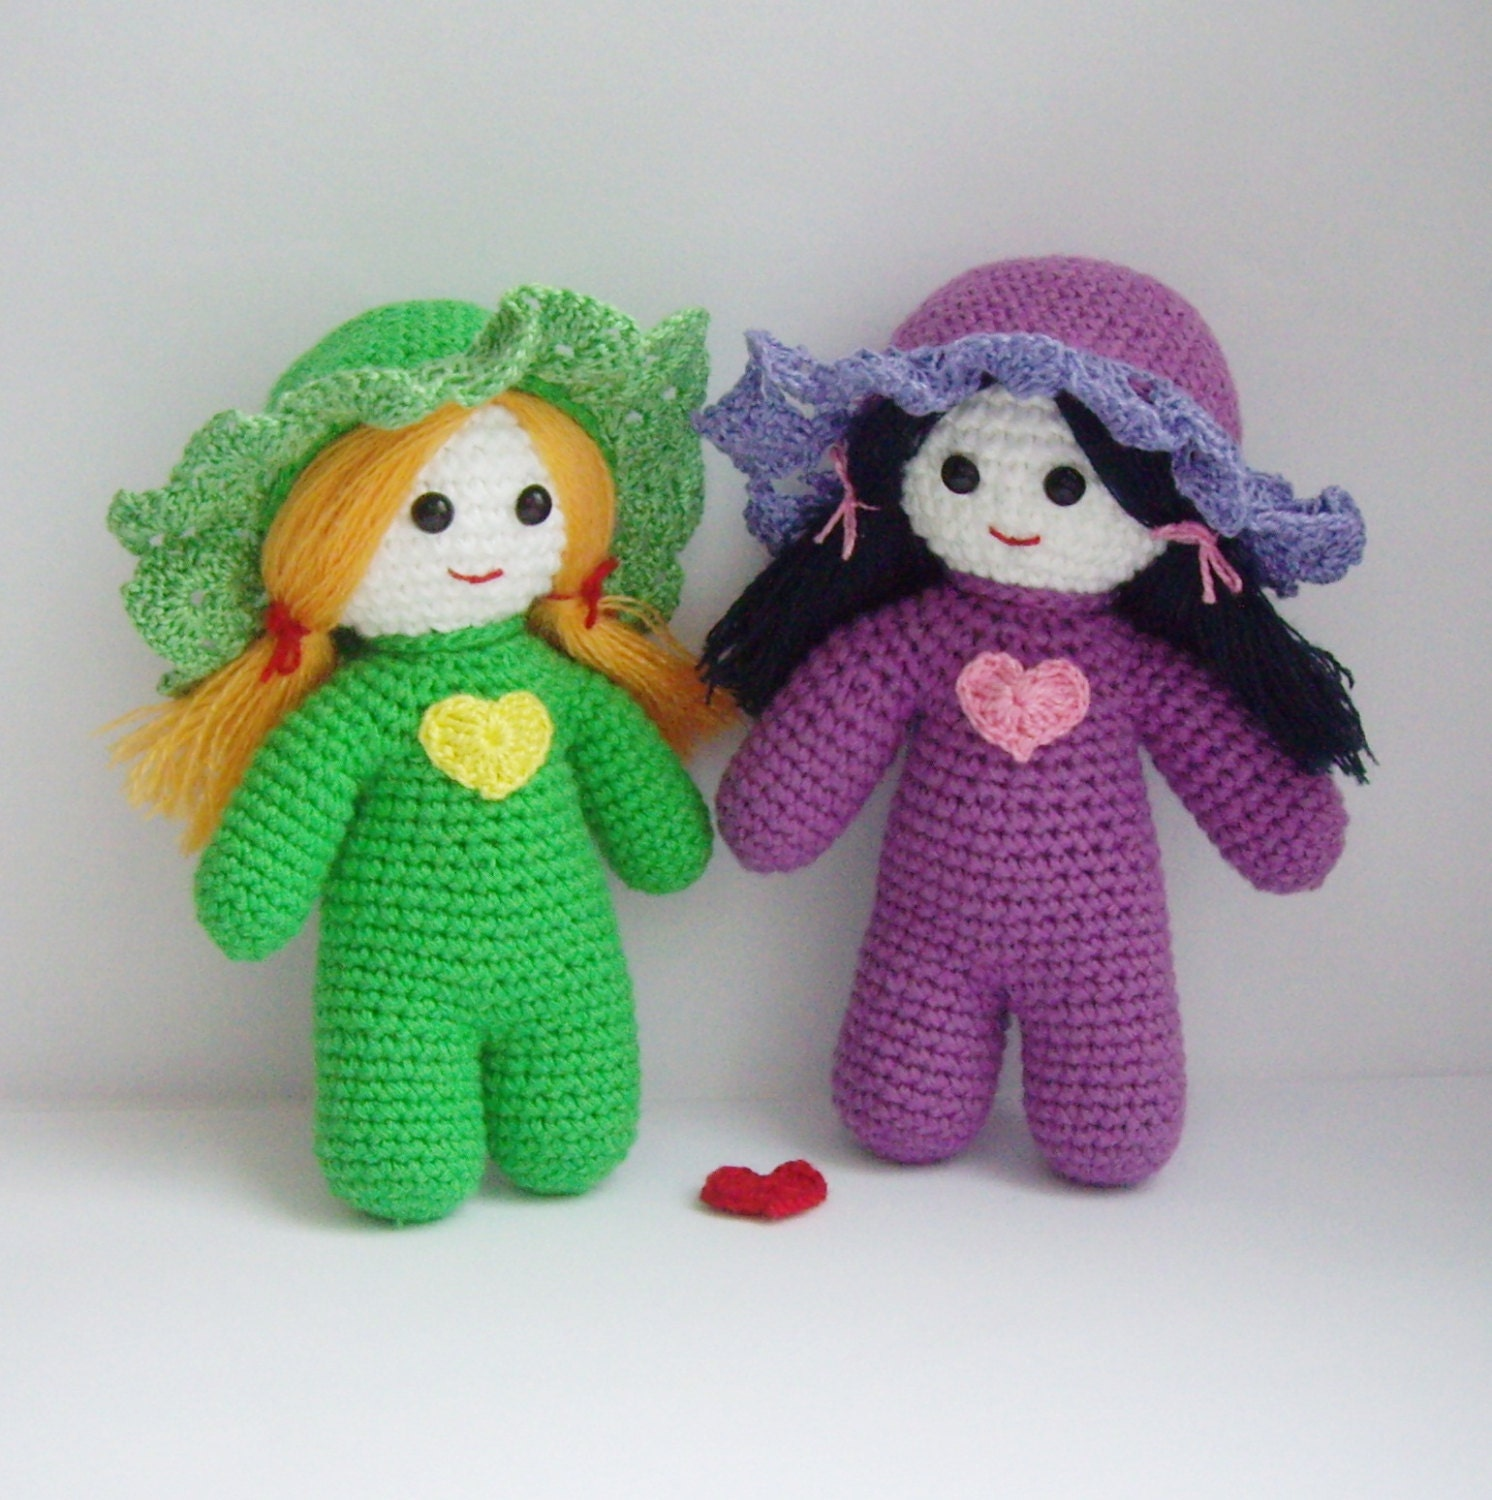 Small Amigurumi Doll Pattern : PDF PATTERN amigurumi crochet toy Little by kseniadesign ...